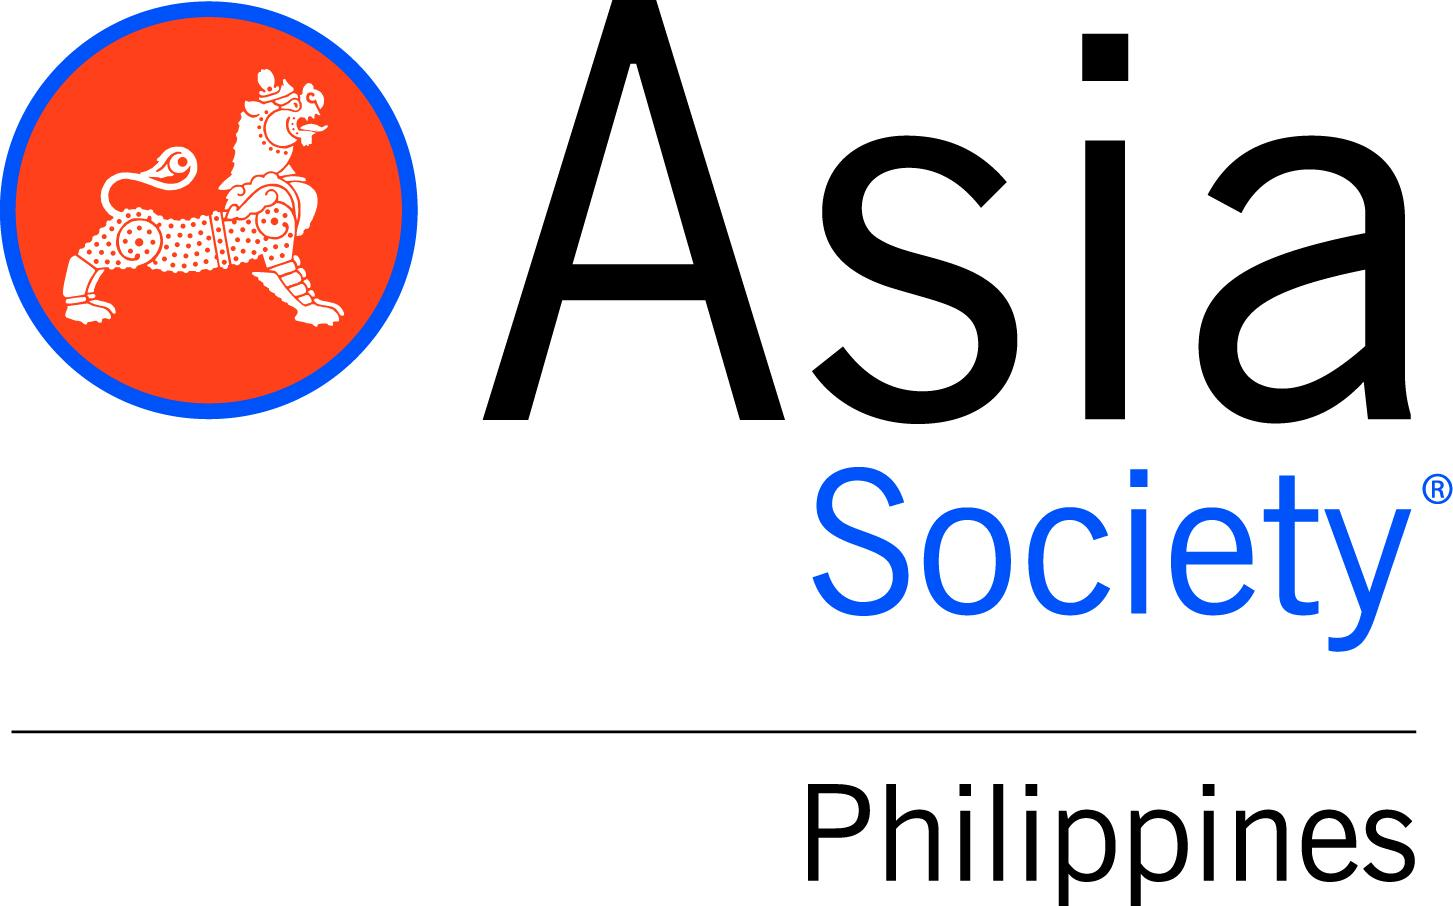 Asia Society Philippines